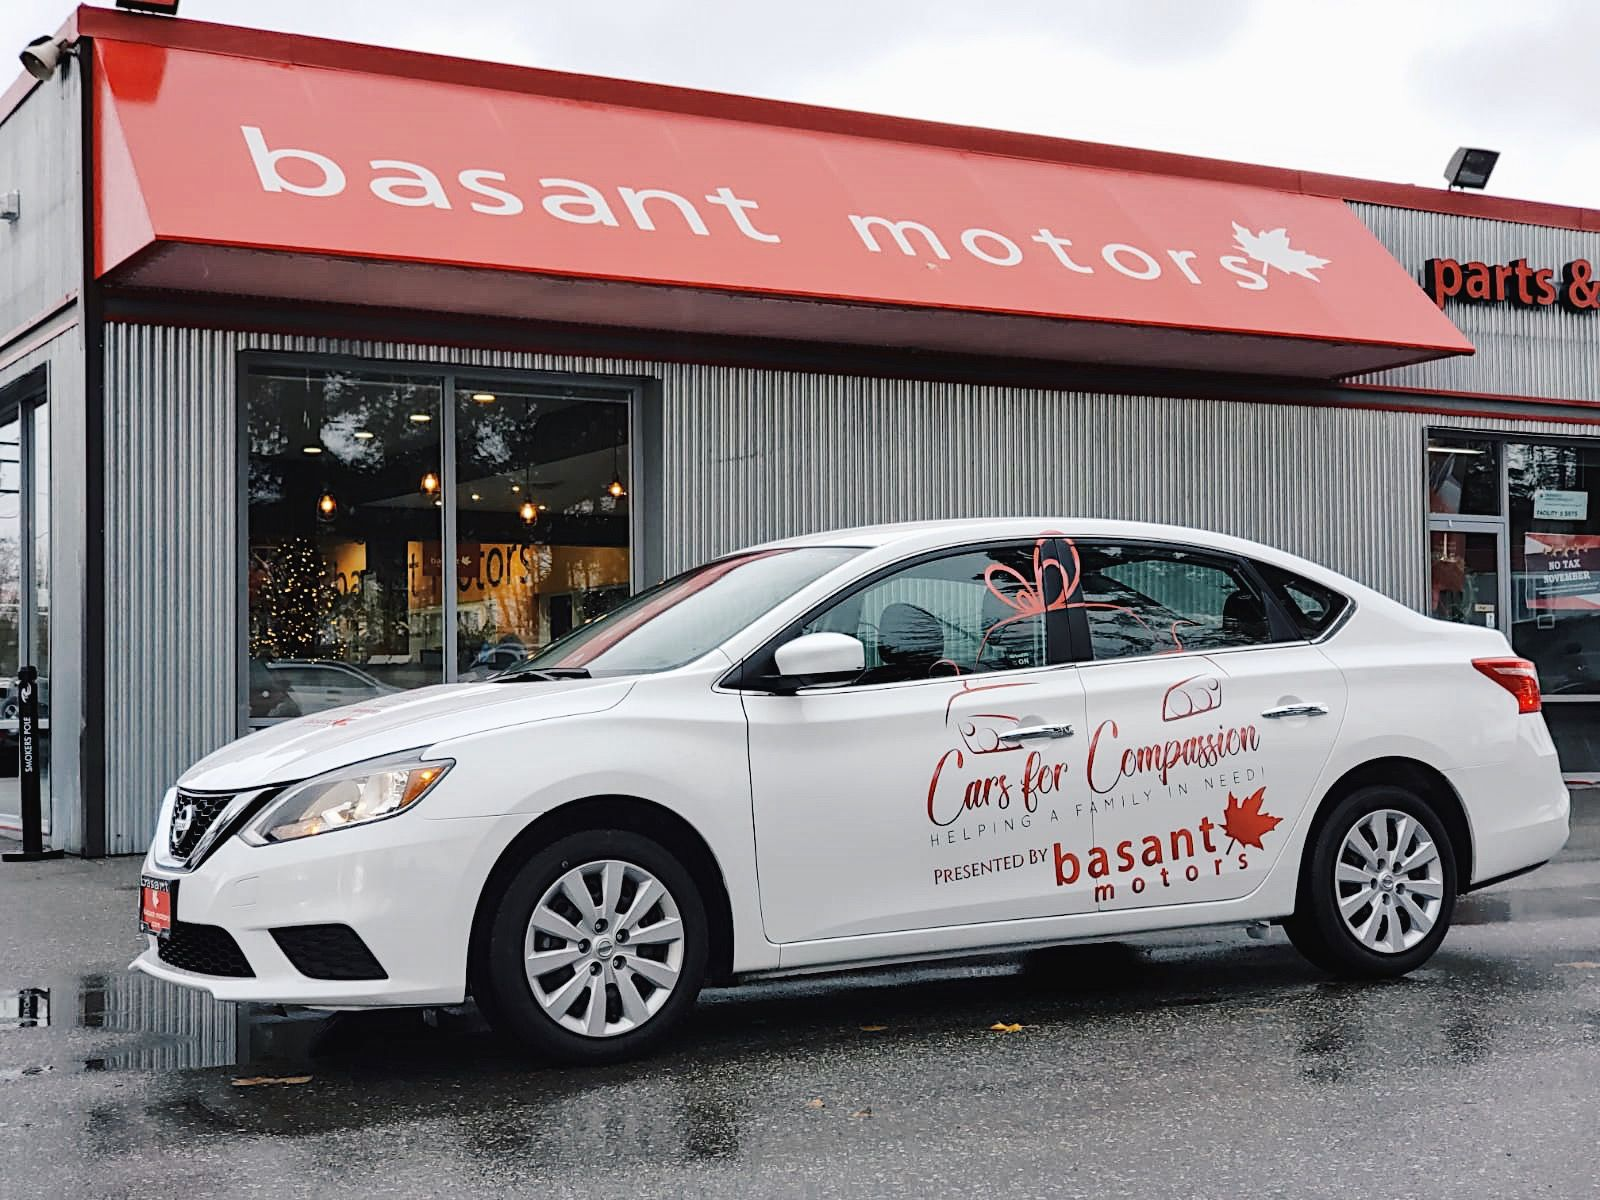 Basant Motors is starting the New Year by giving a car to a family in need